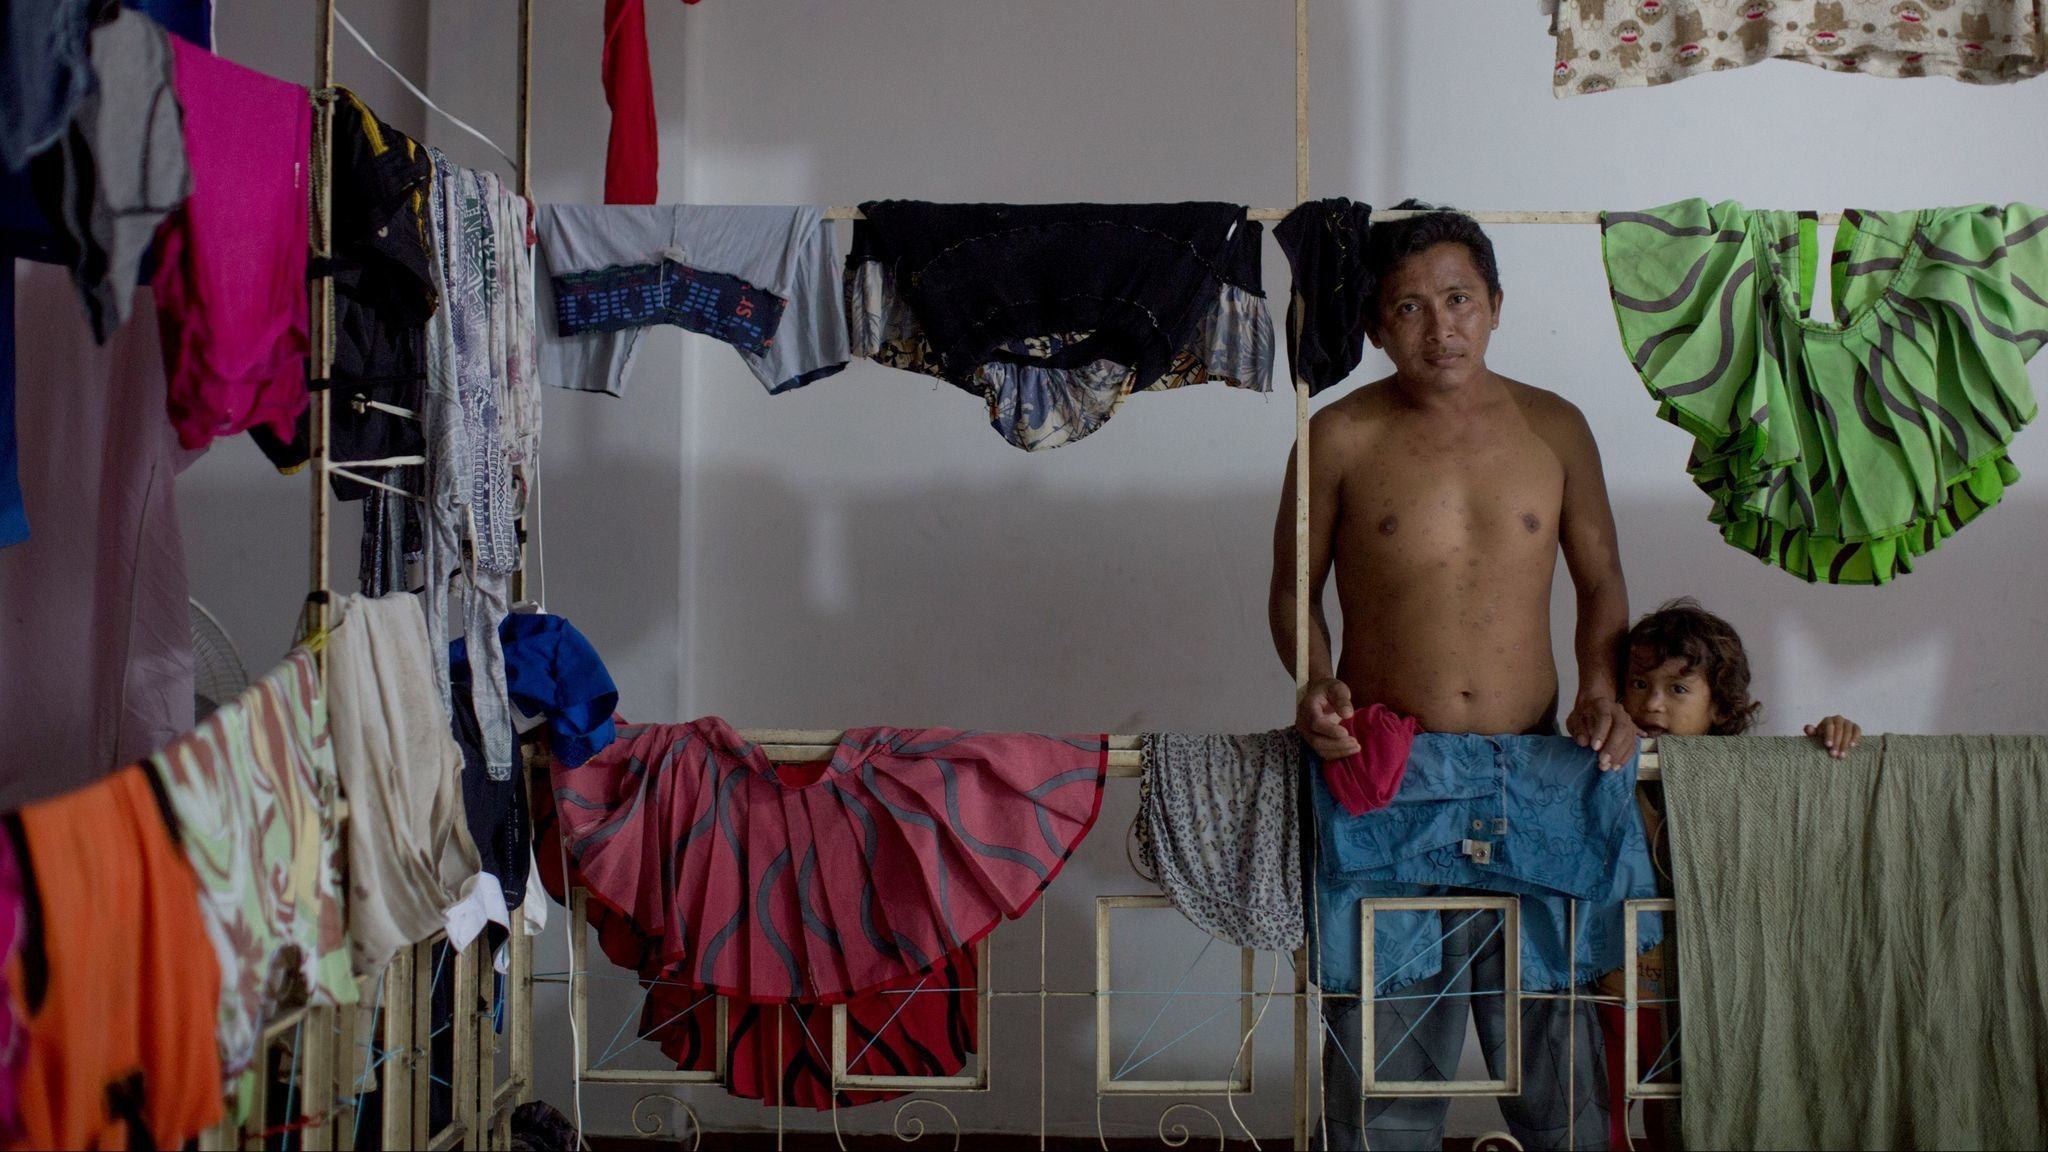 Bergassio Quiñonez traveled with his wife and two daughters to Manaus, Brazil, when food became scarce in Venezuela.